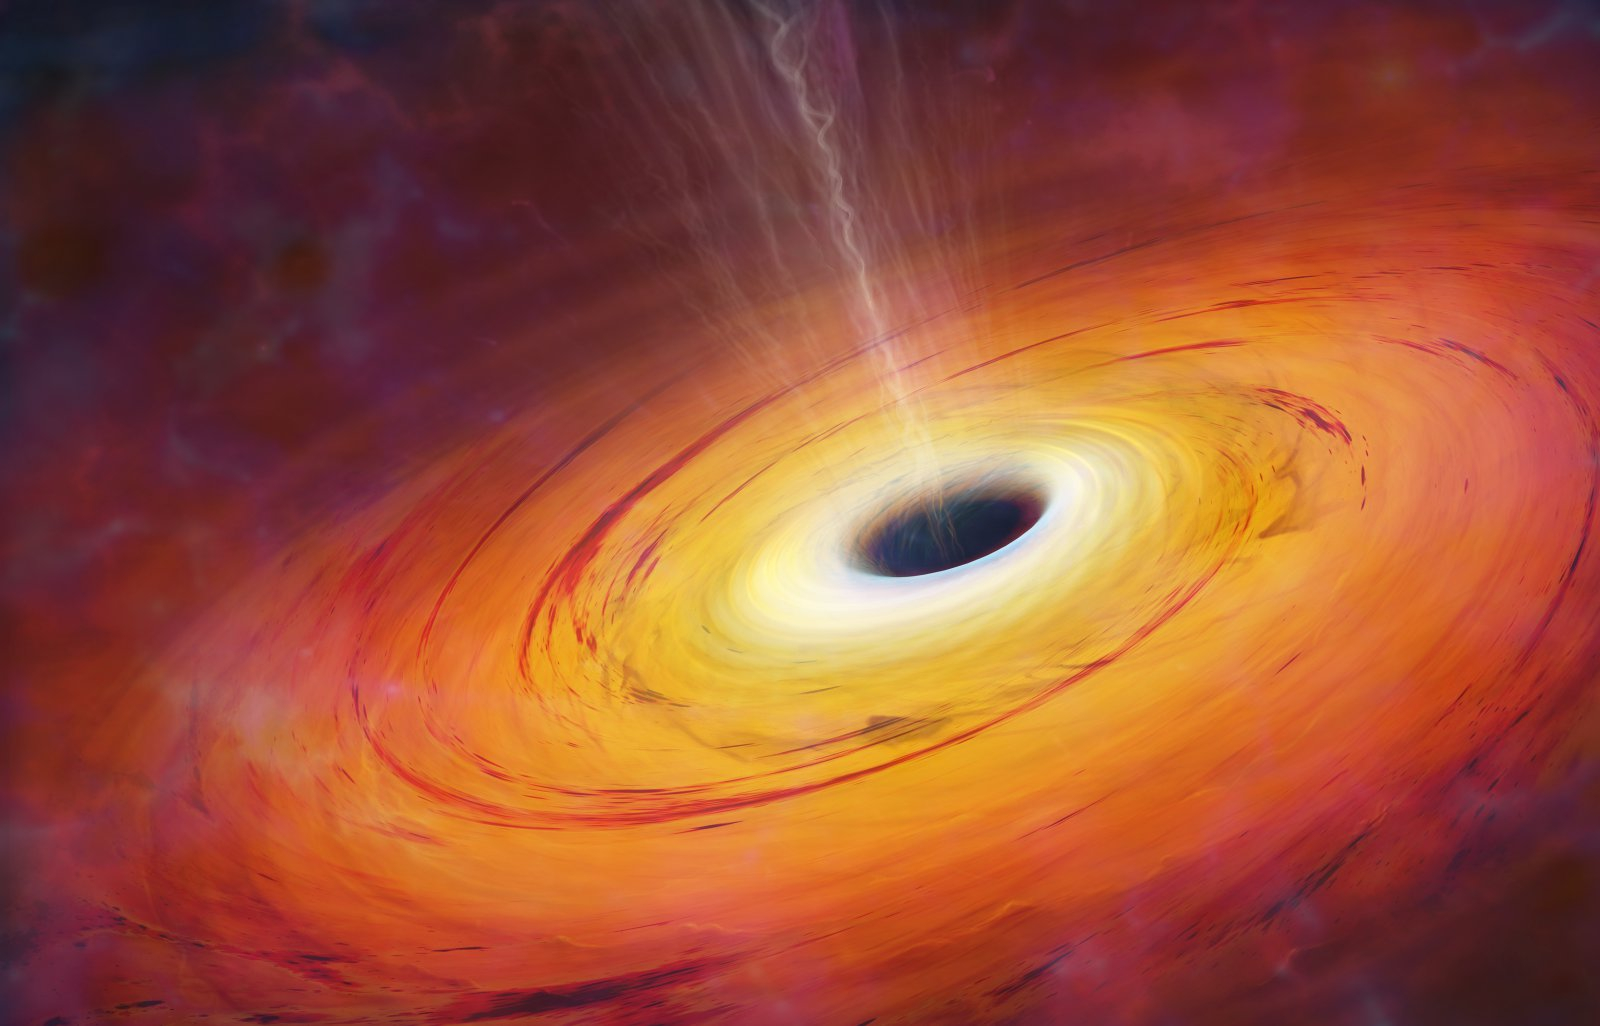 event-horizon-black-hole